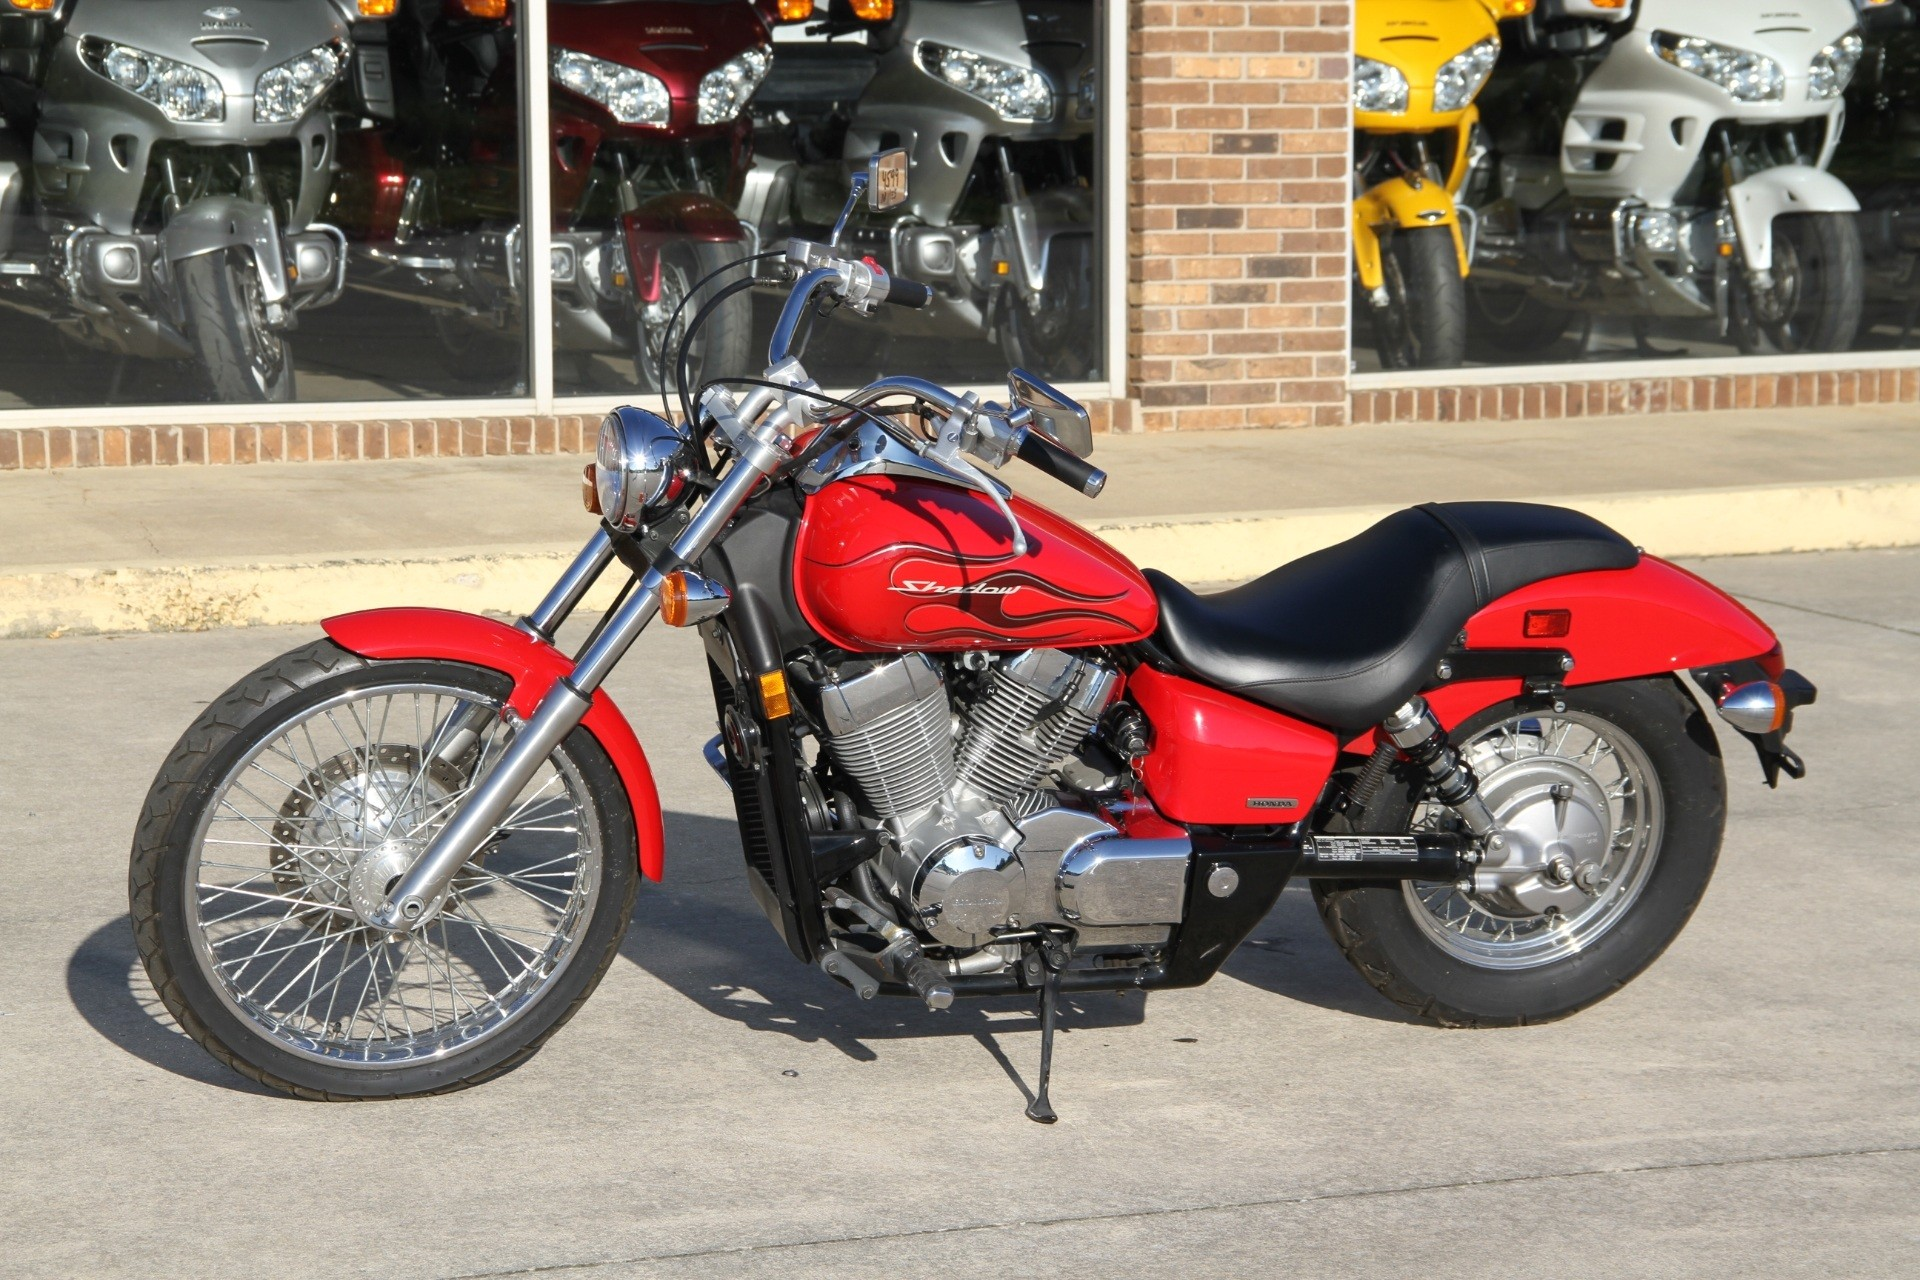 2007 honda shadow spirit 750 c2 motorcycles. Black Bedroom Furniture Sets. Home Design Ideas